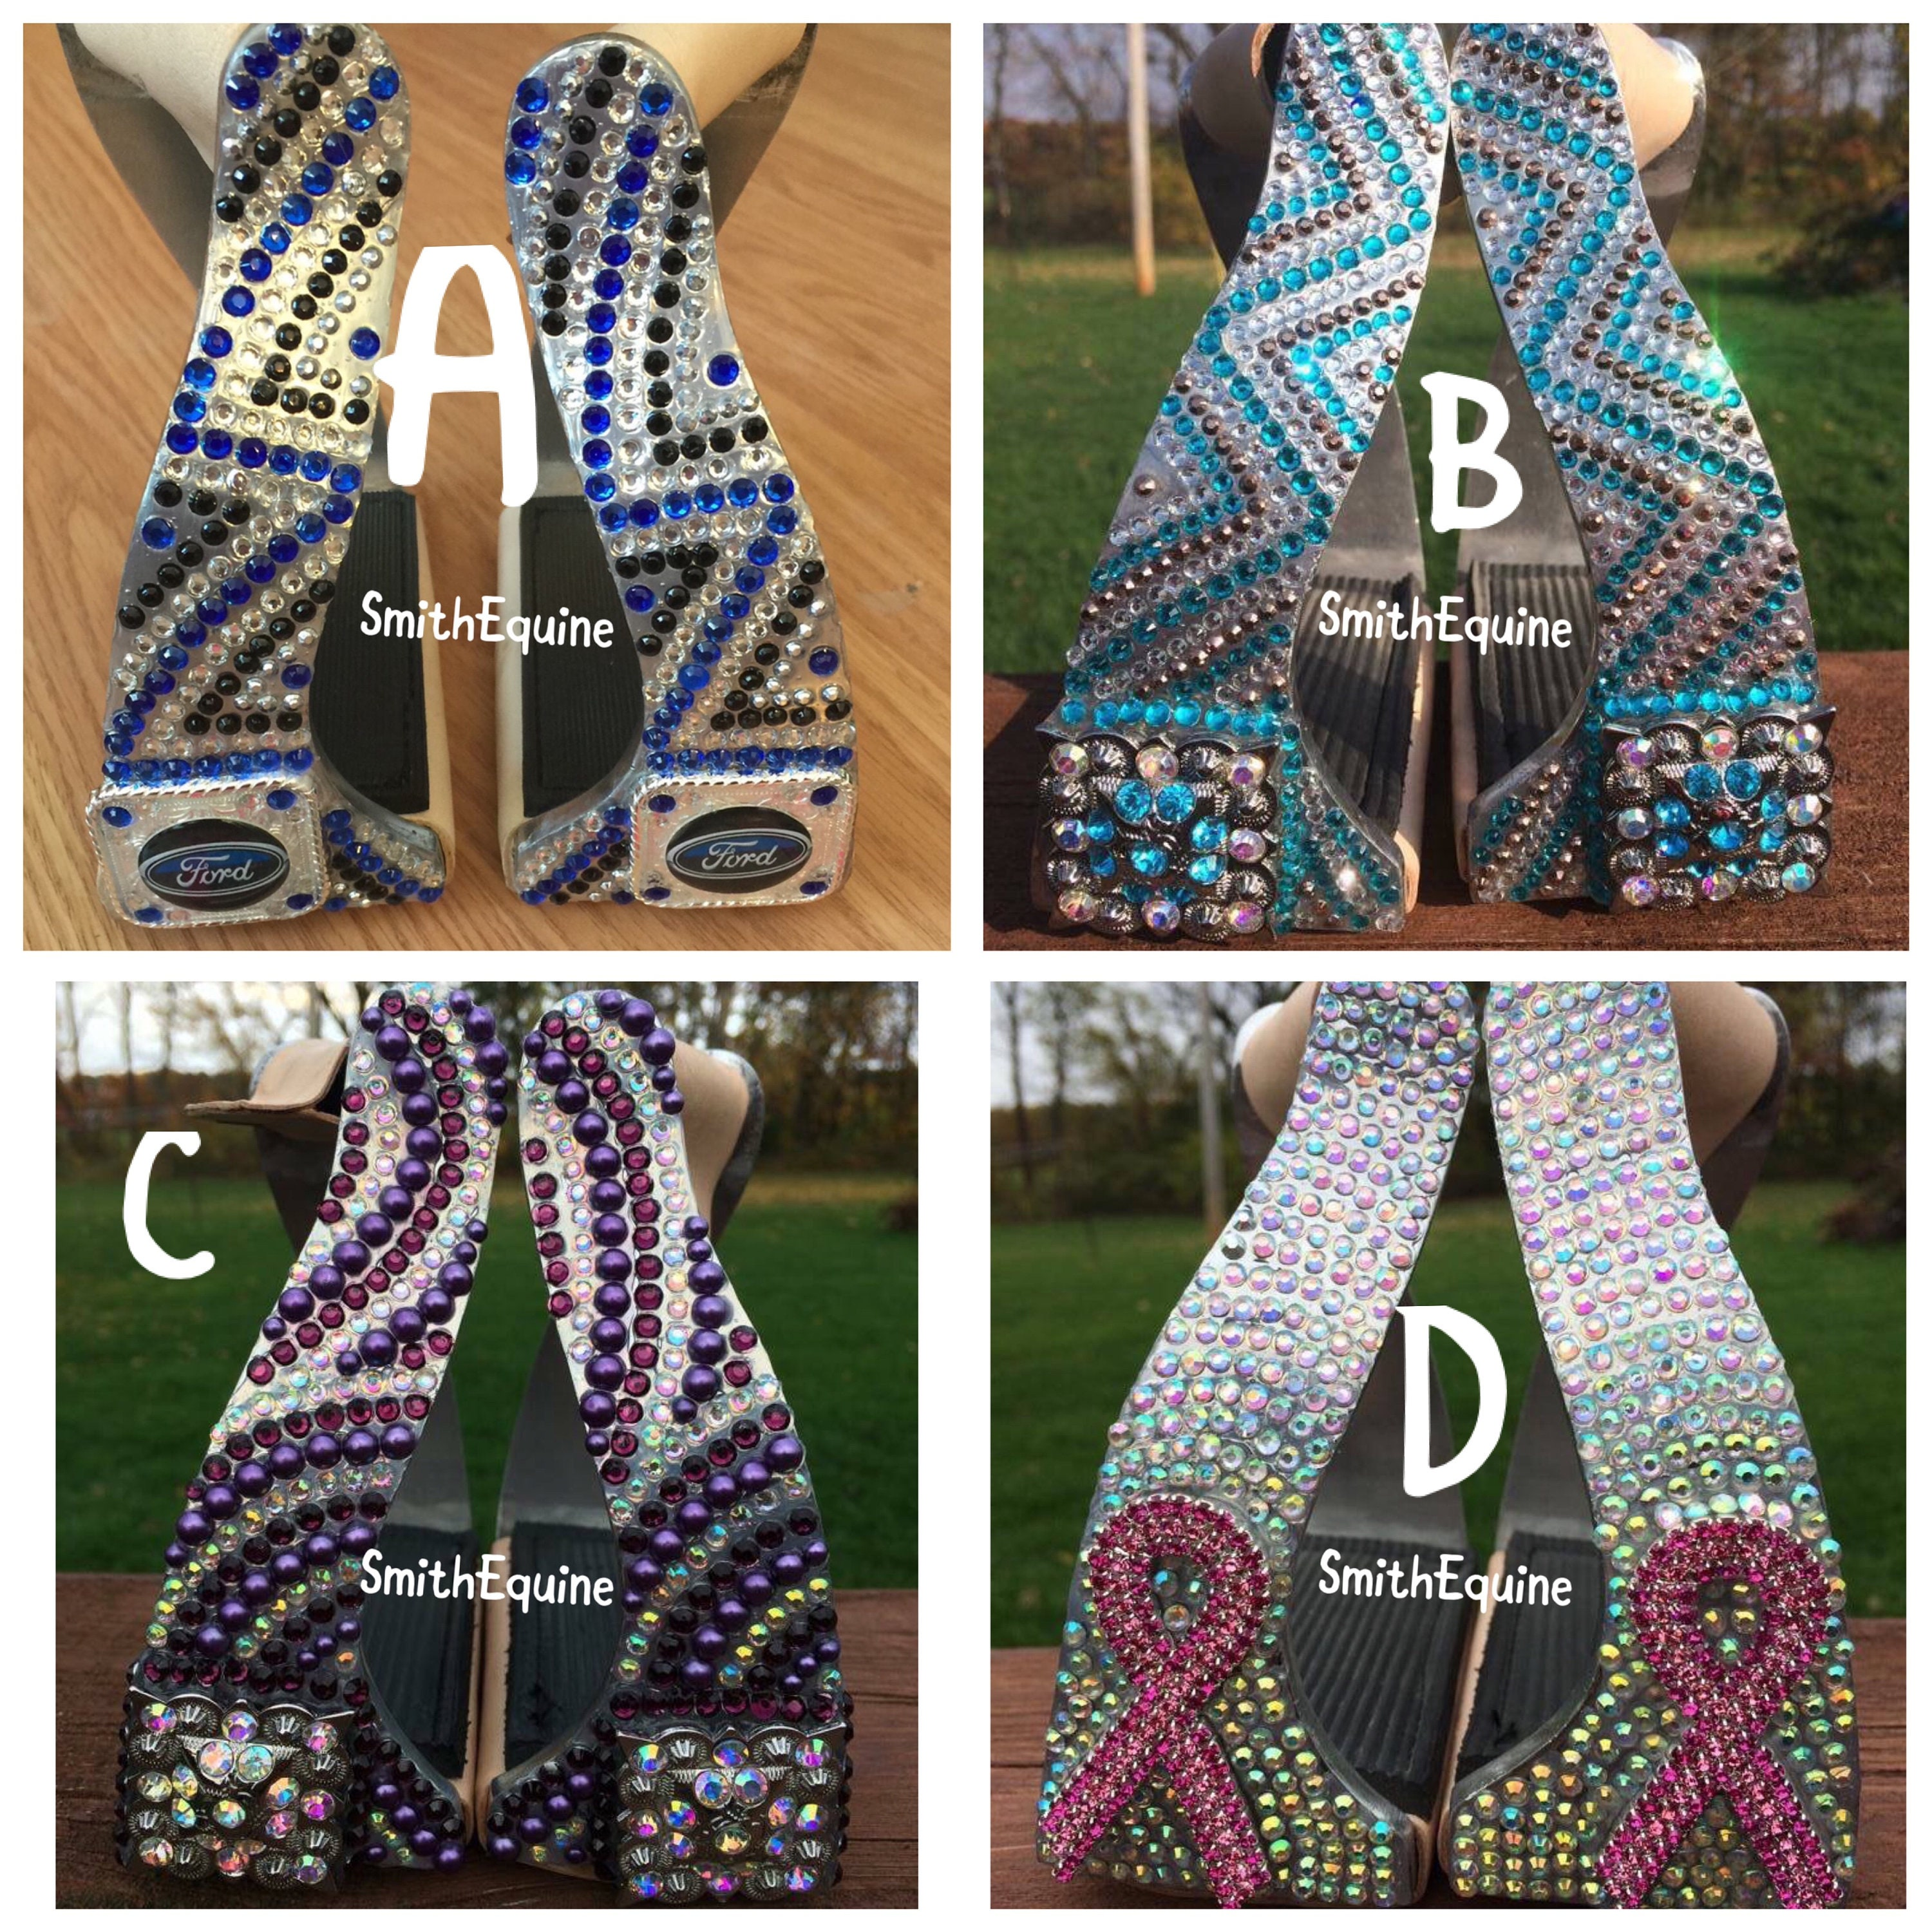 Bling Stirrups youth & adult size